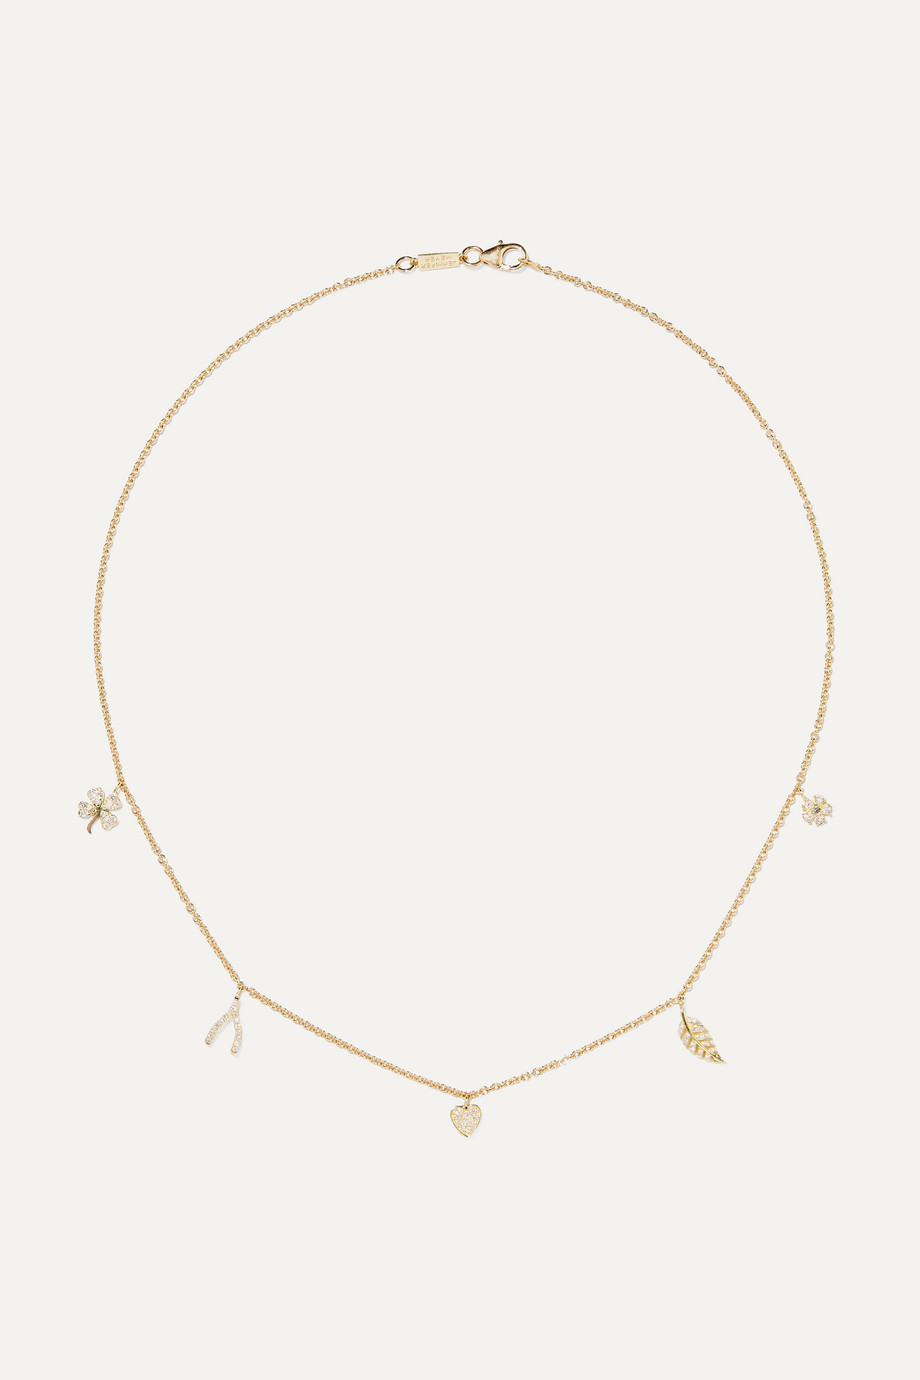 JENNIFER MEYER Mini Charm 18-karat gold diamond necklace